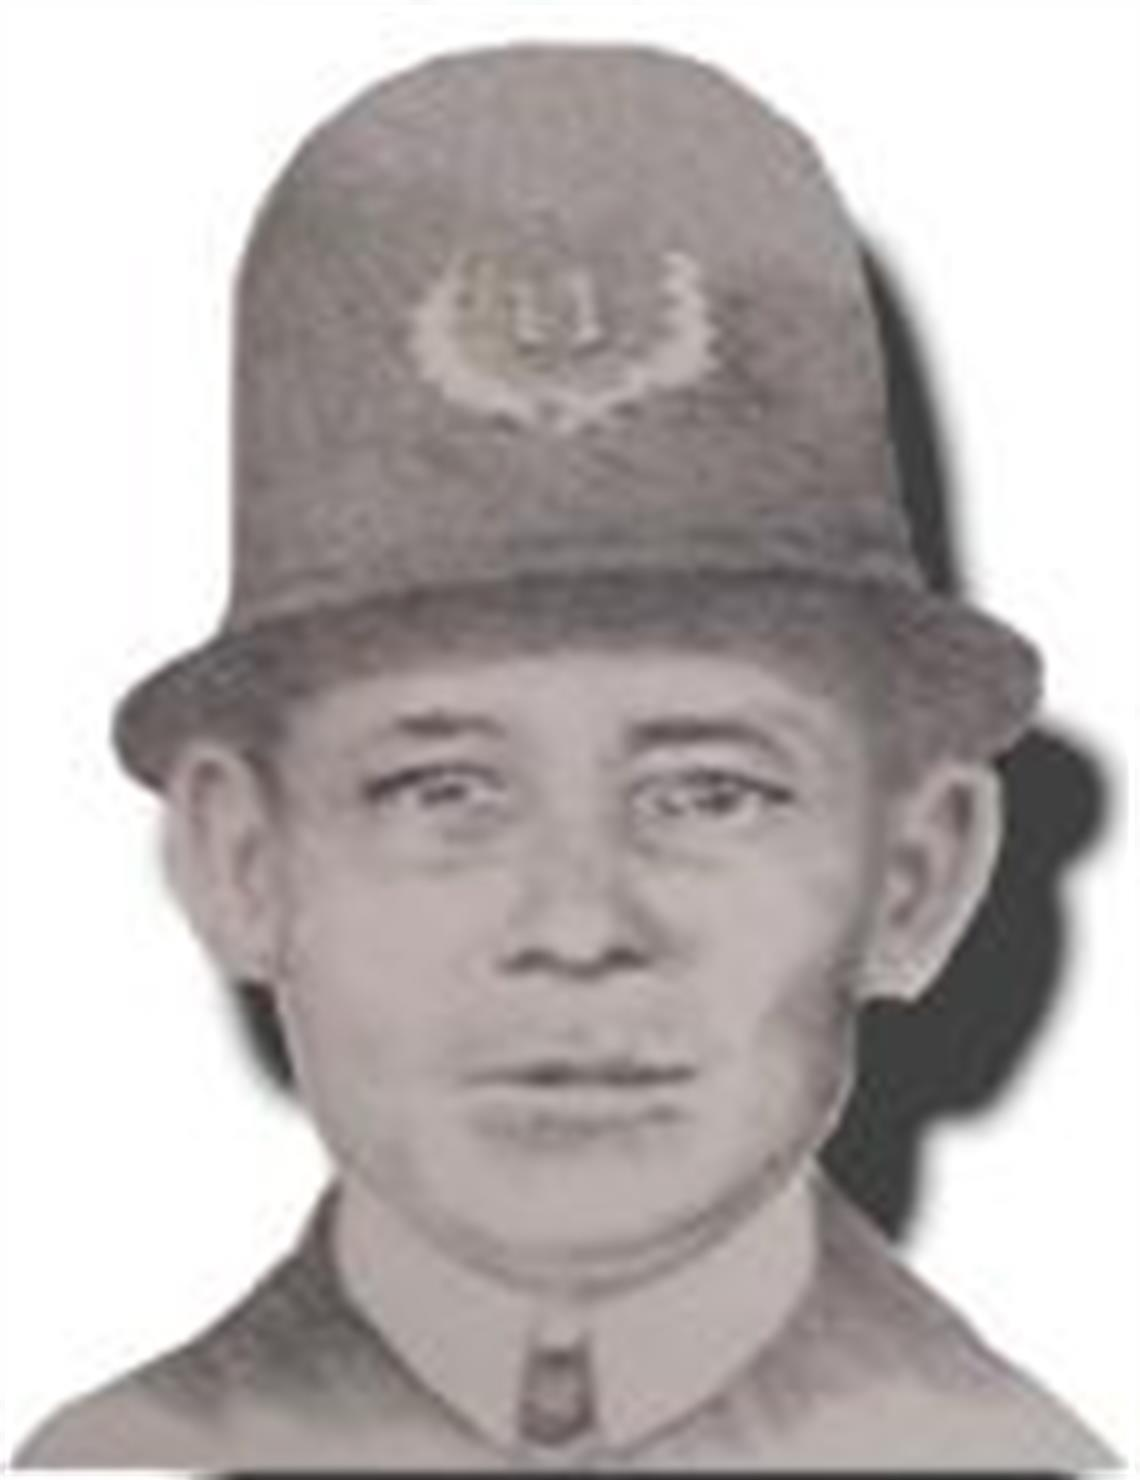 Officer George Brandsma